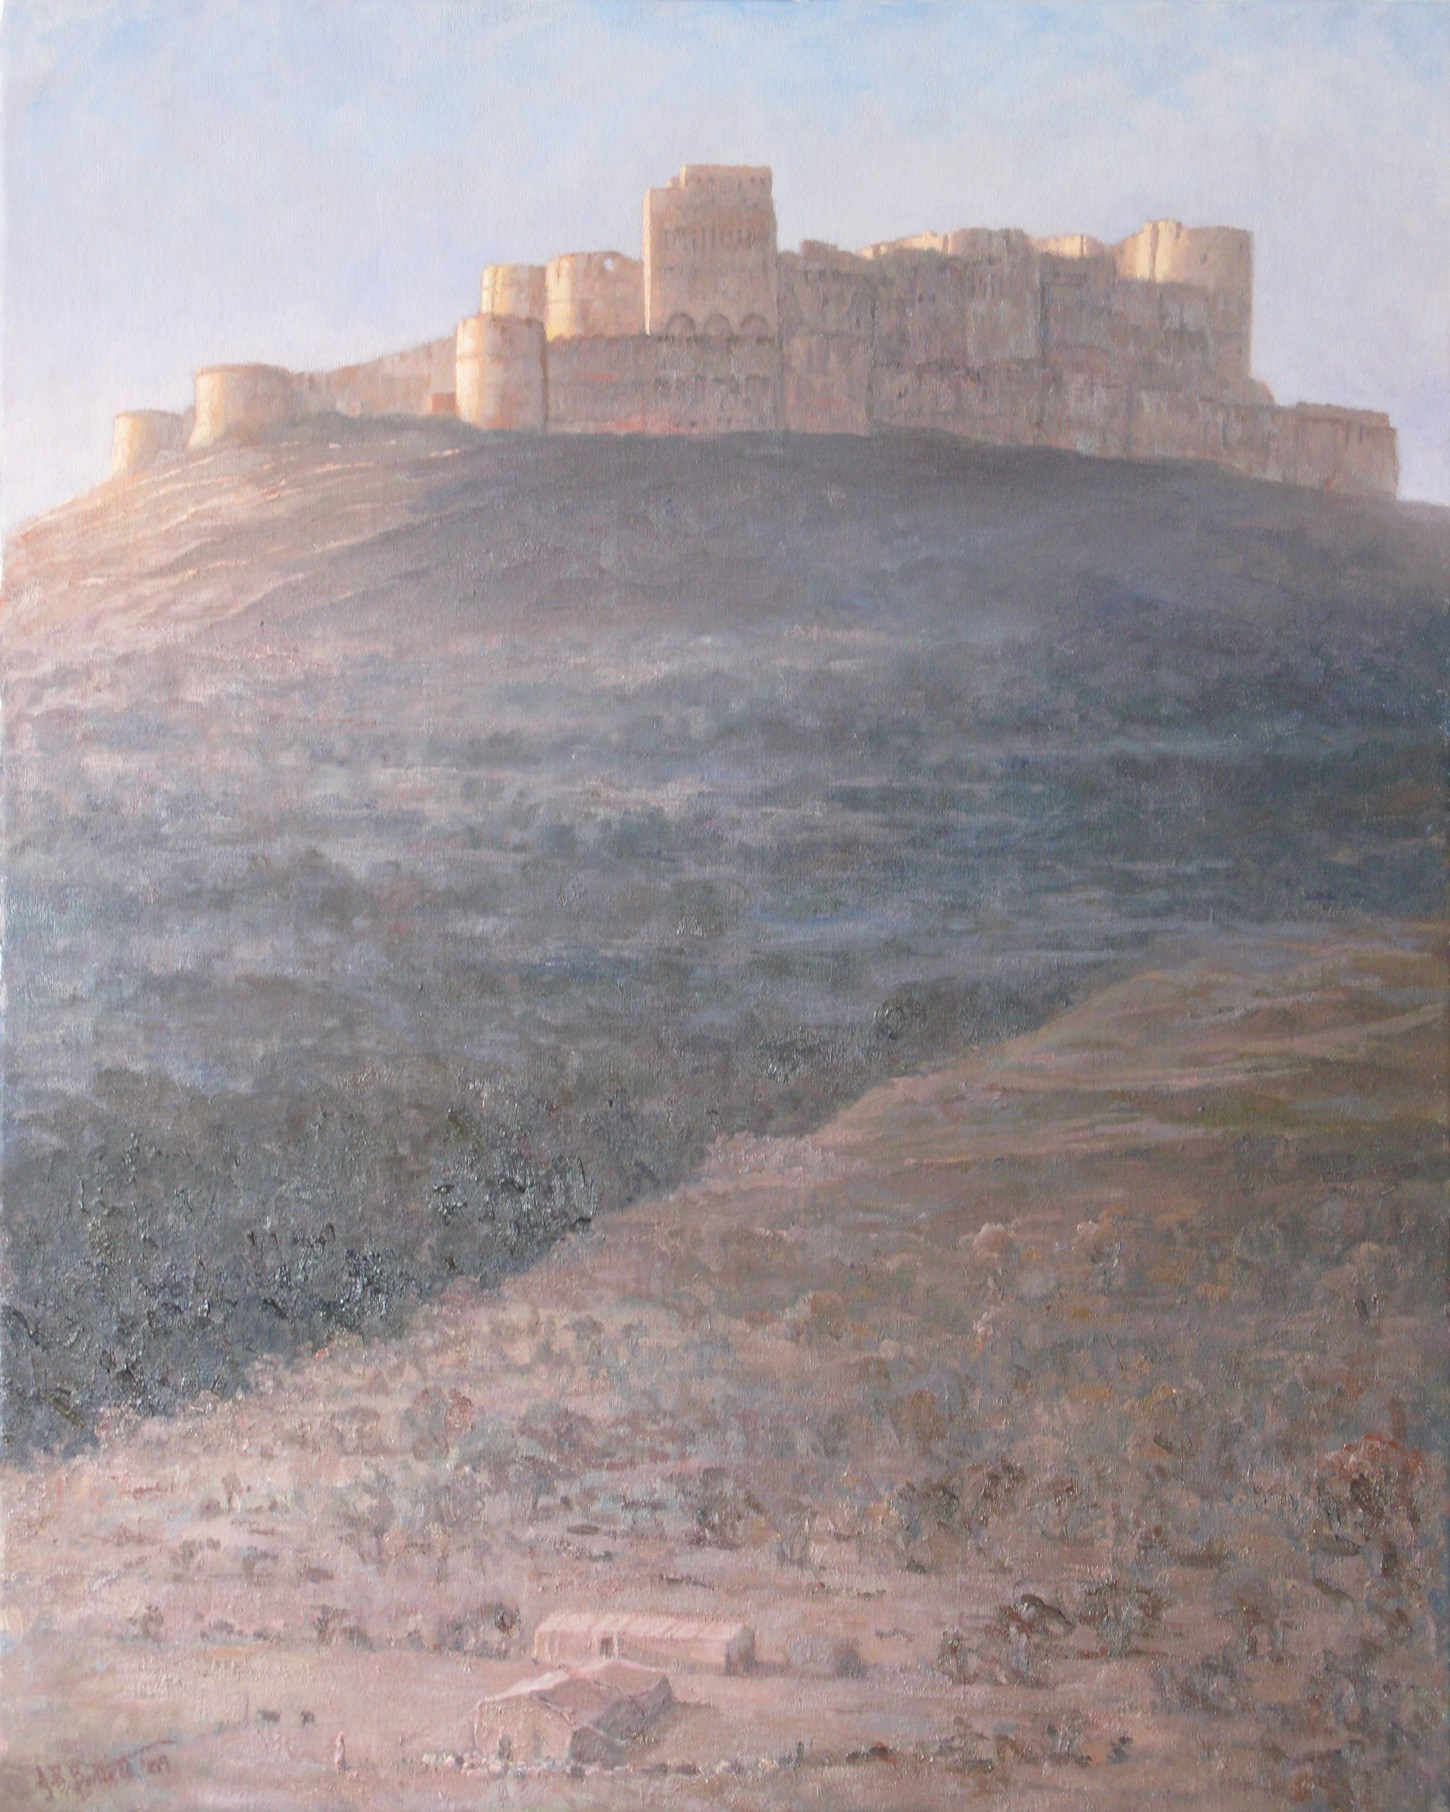 Sunrise on the Crac des Chevaliers